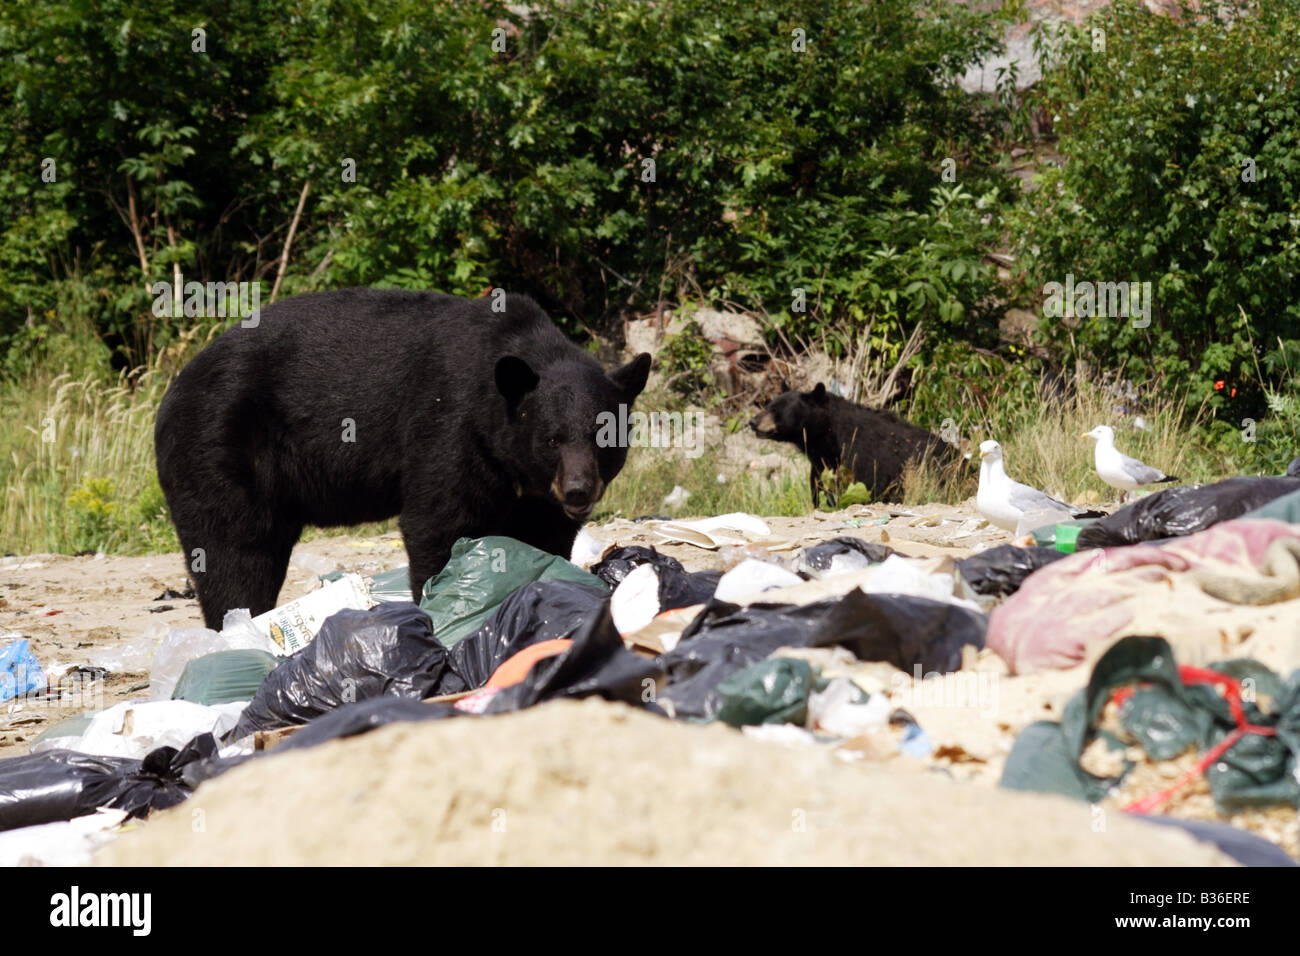 Black bears searching garbage for food at garbage dump site in killarney ontario canada